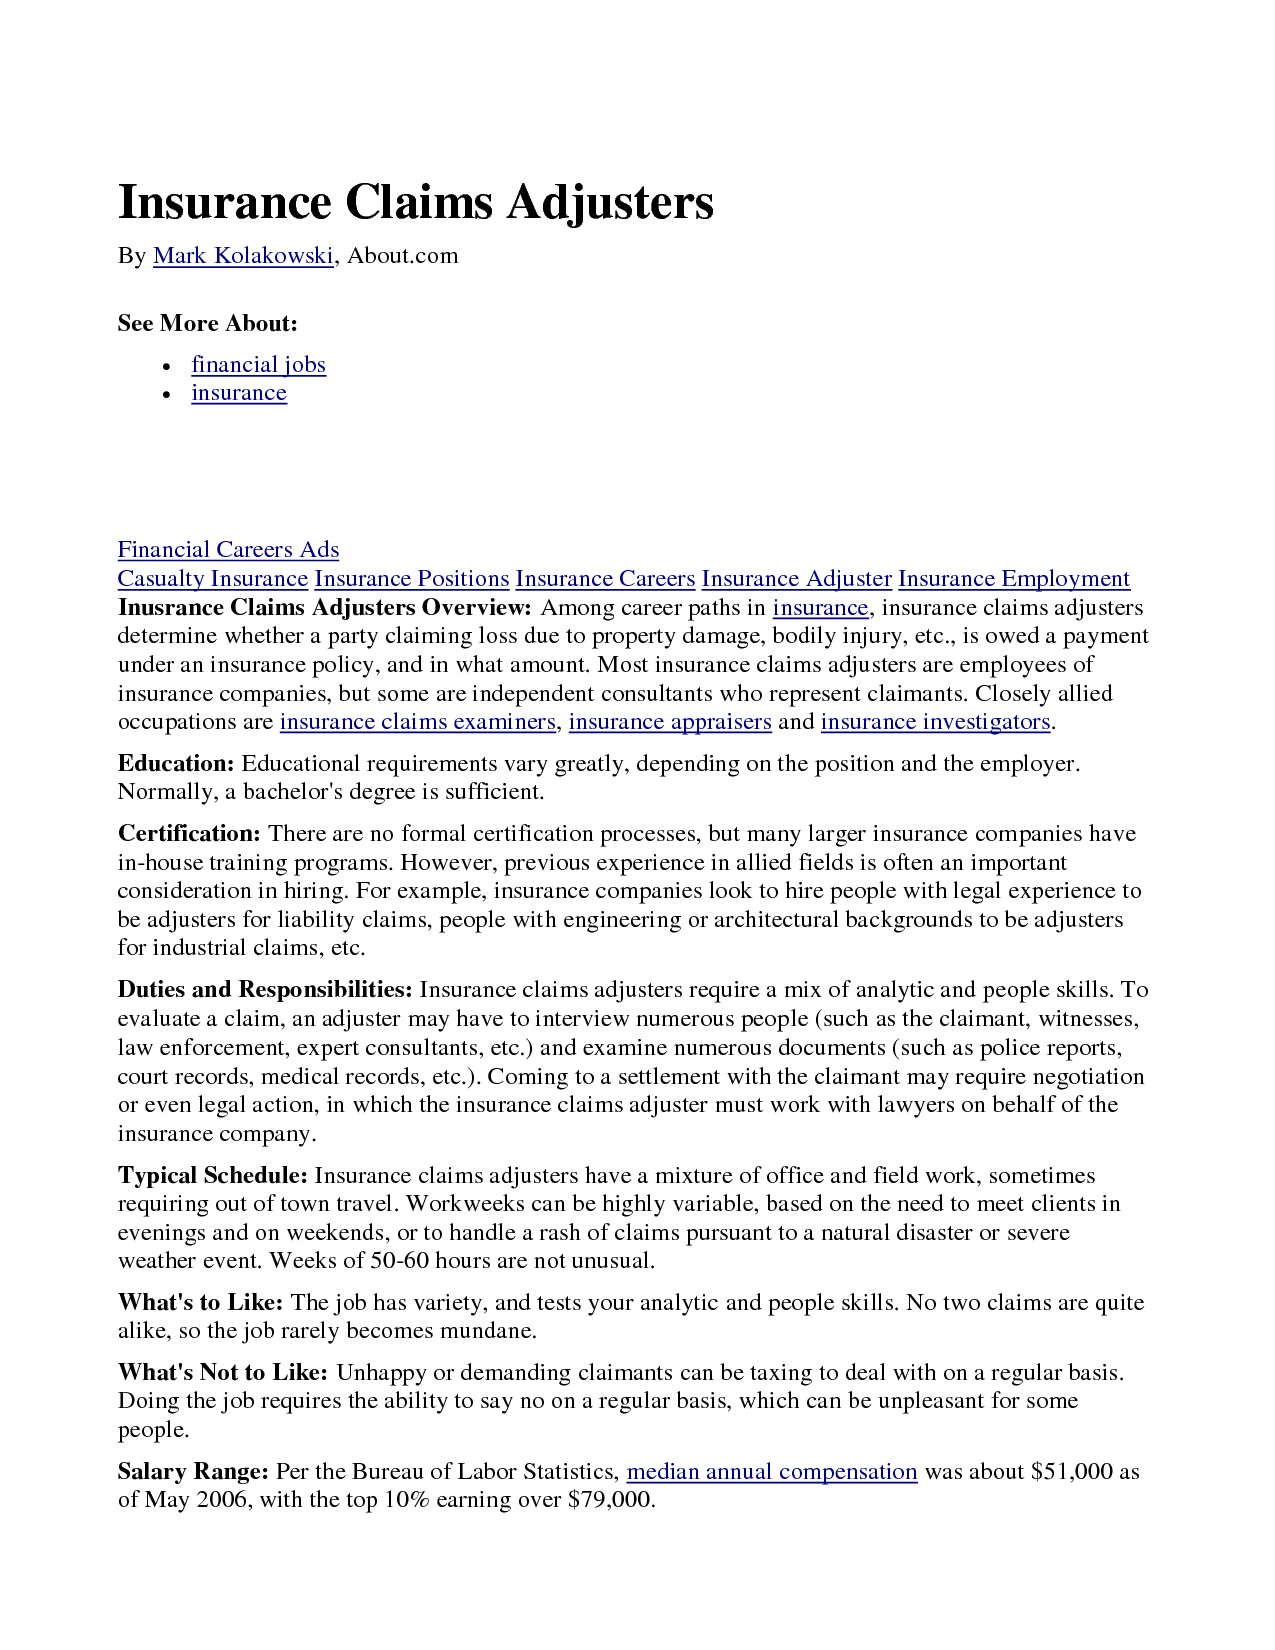 Claims adjuster quotes quotesgram for Cover letter for claims adjuster position